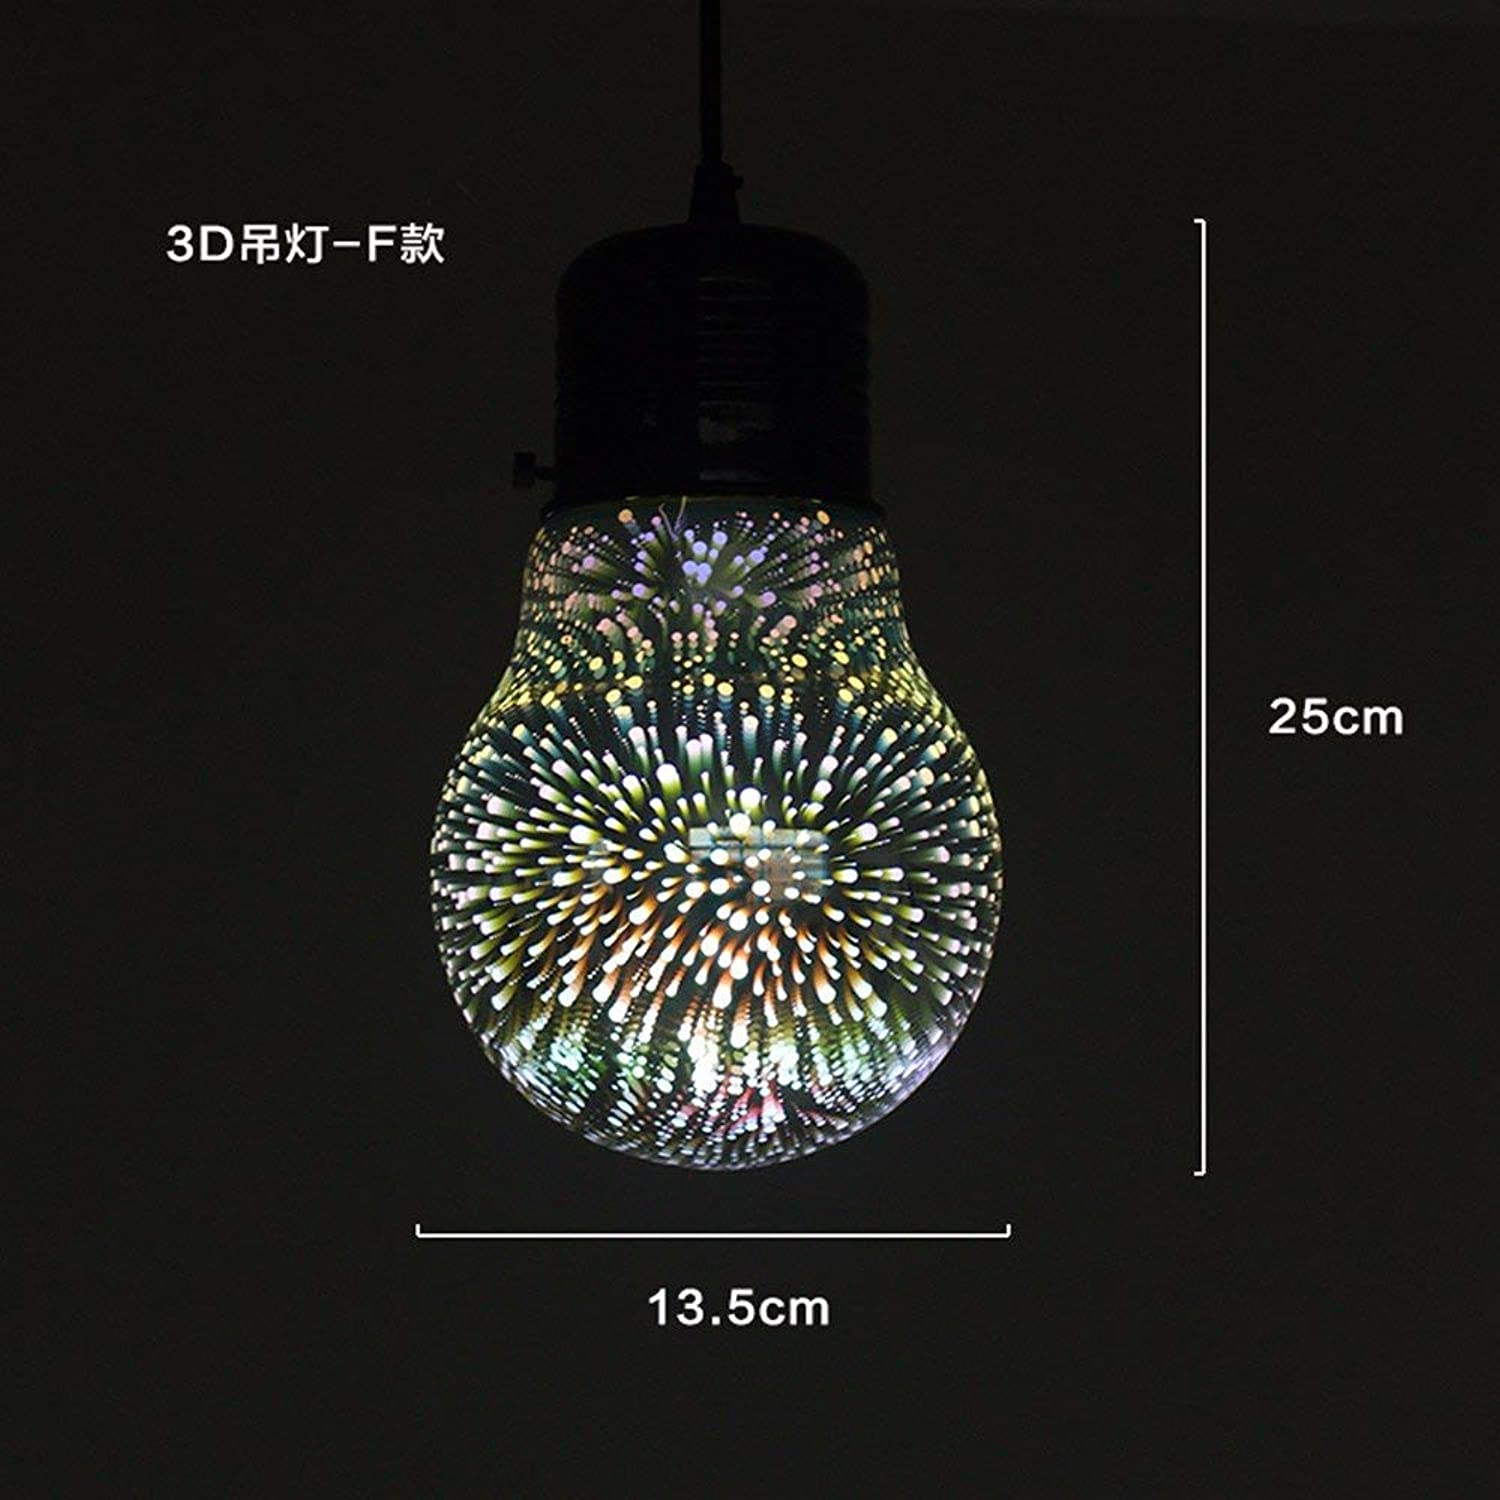 Shengdasm Home NeuesteD Farbe Glas Kronleuchter kreative Kunst Lampen (Farbe   F 25x13.5cm)